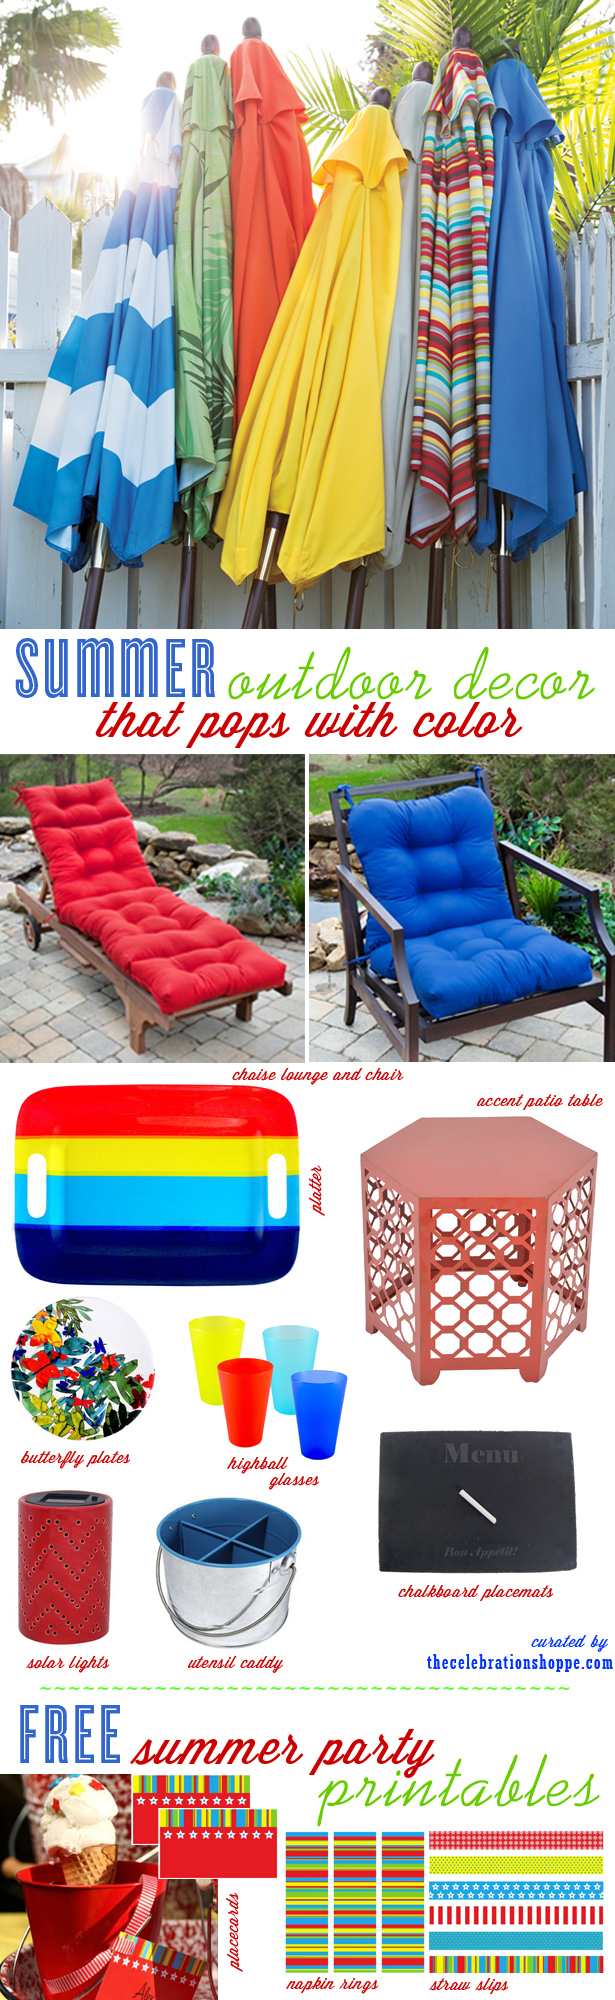 Outdoor furniture patio ideas free party printables